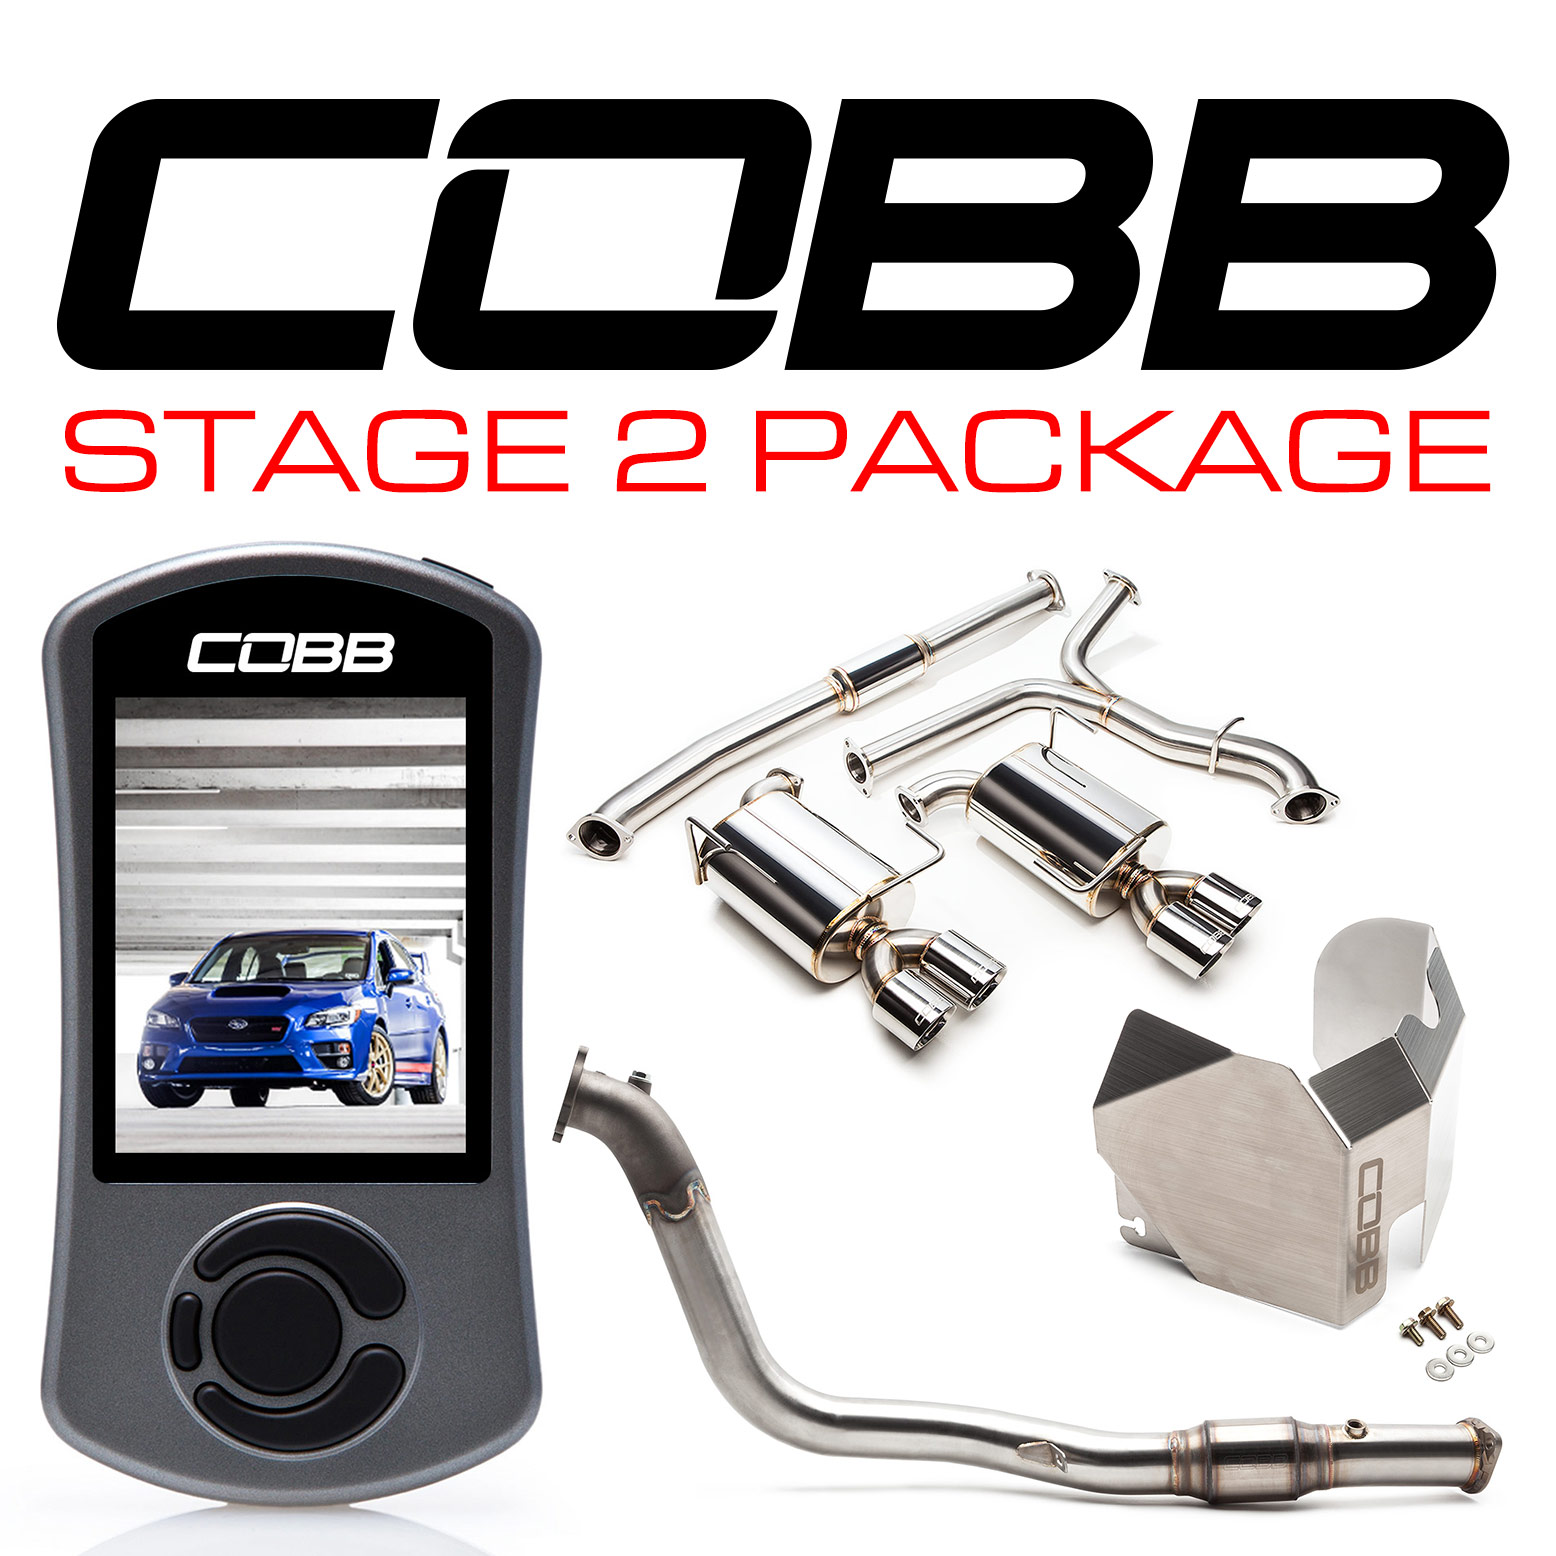 Subaru Stage 2 Power Package STI 2015-2020, STI Type RA 2018